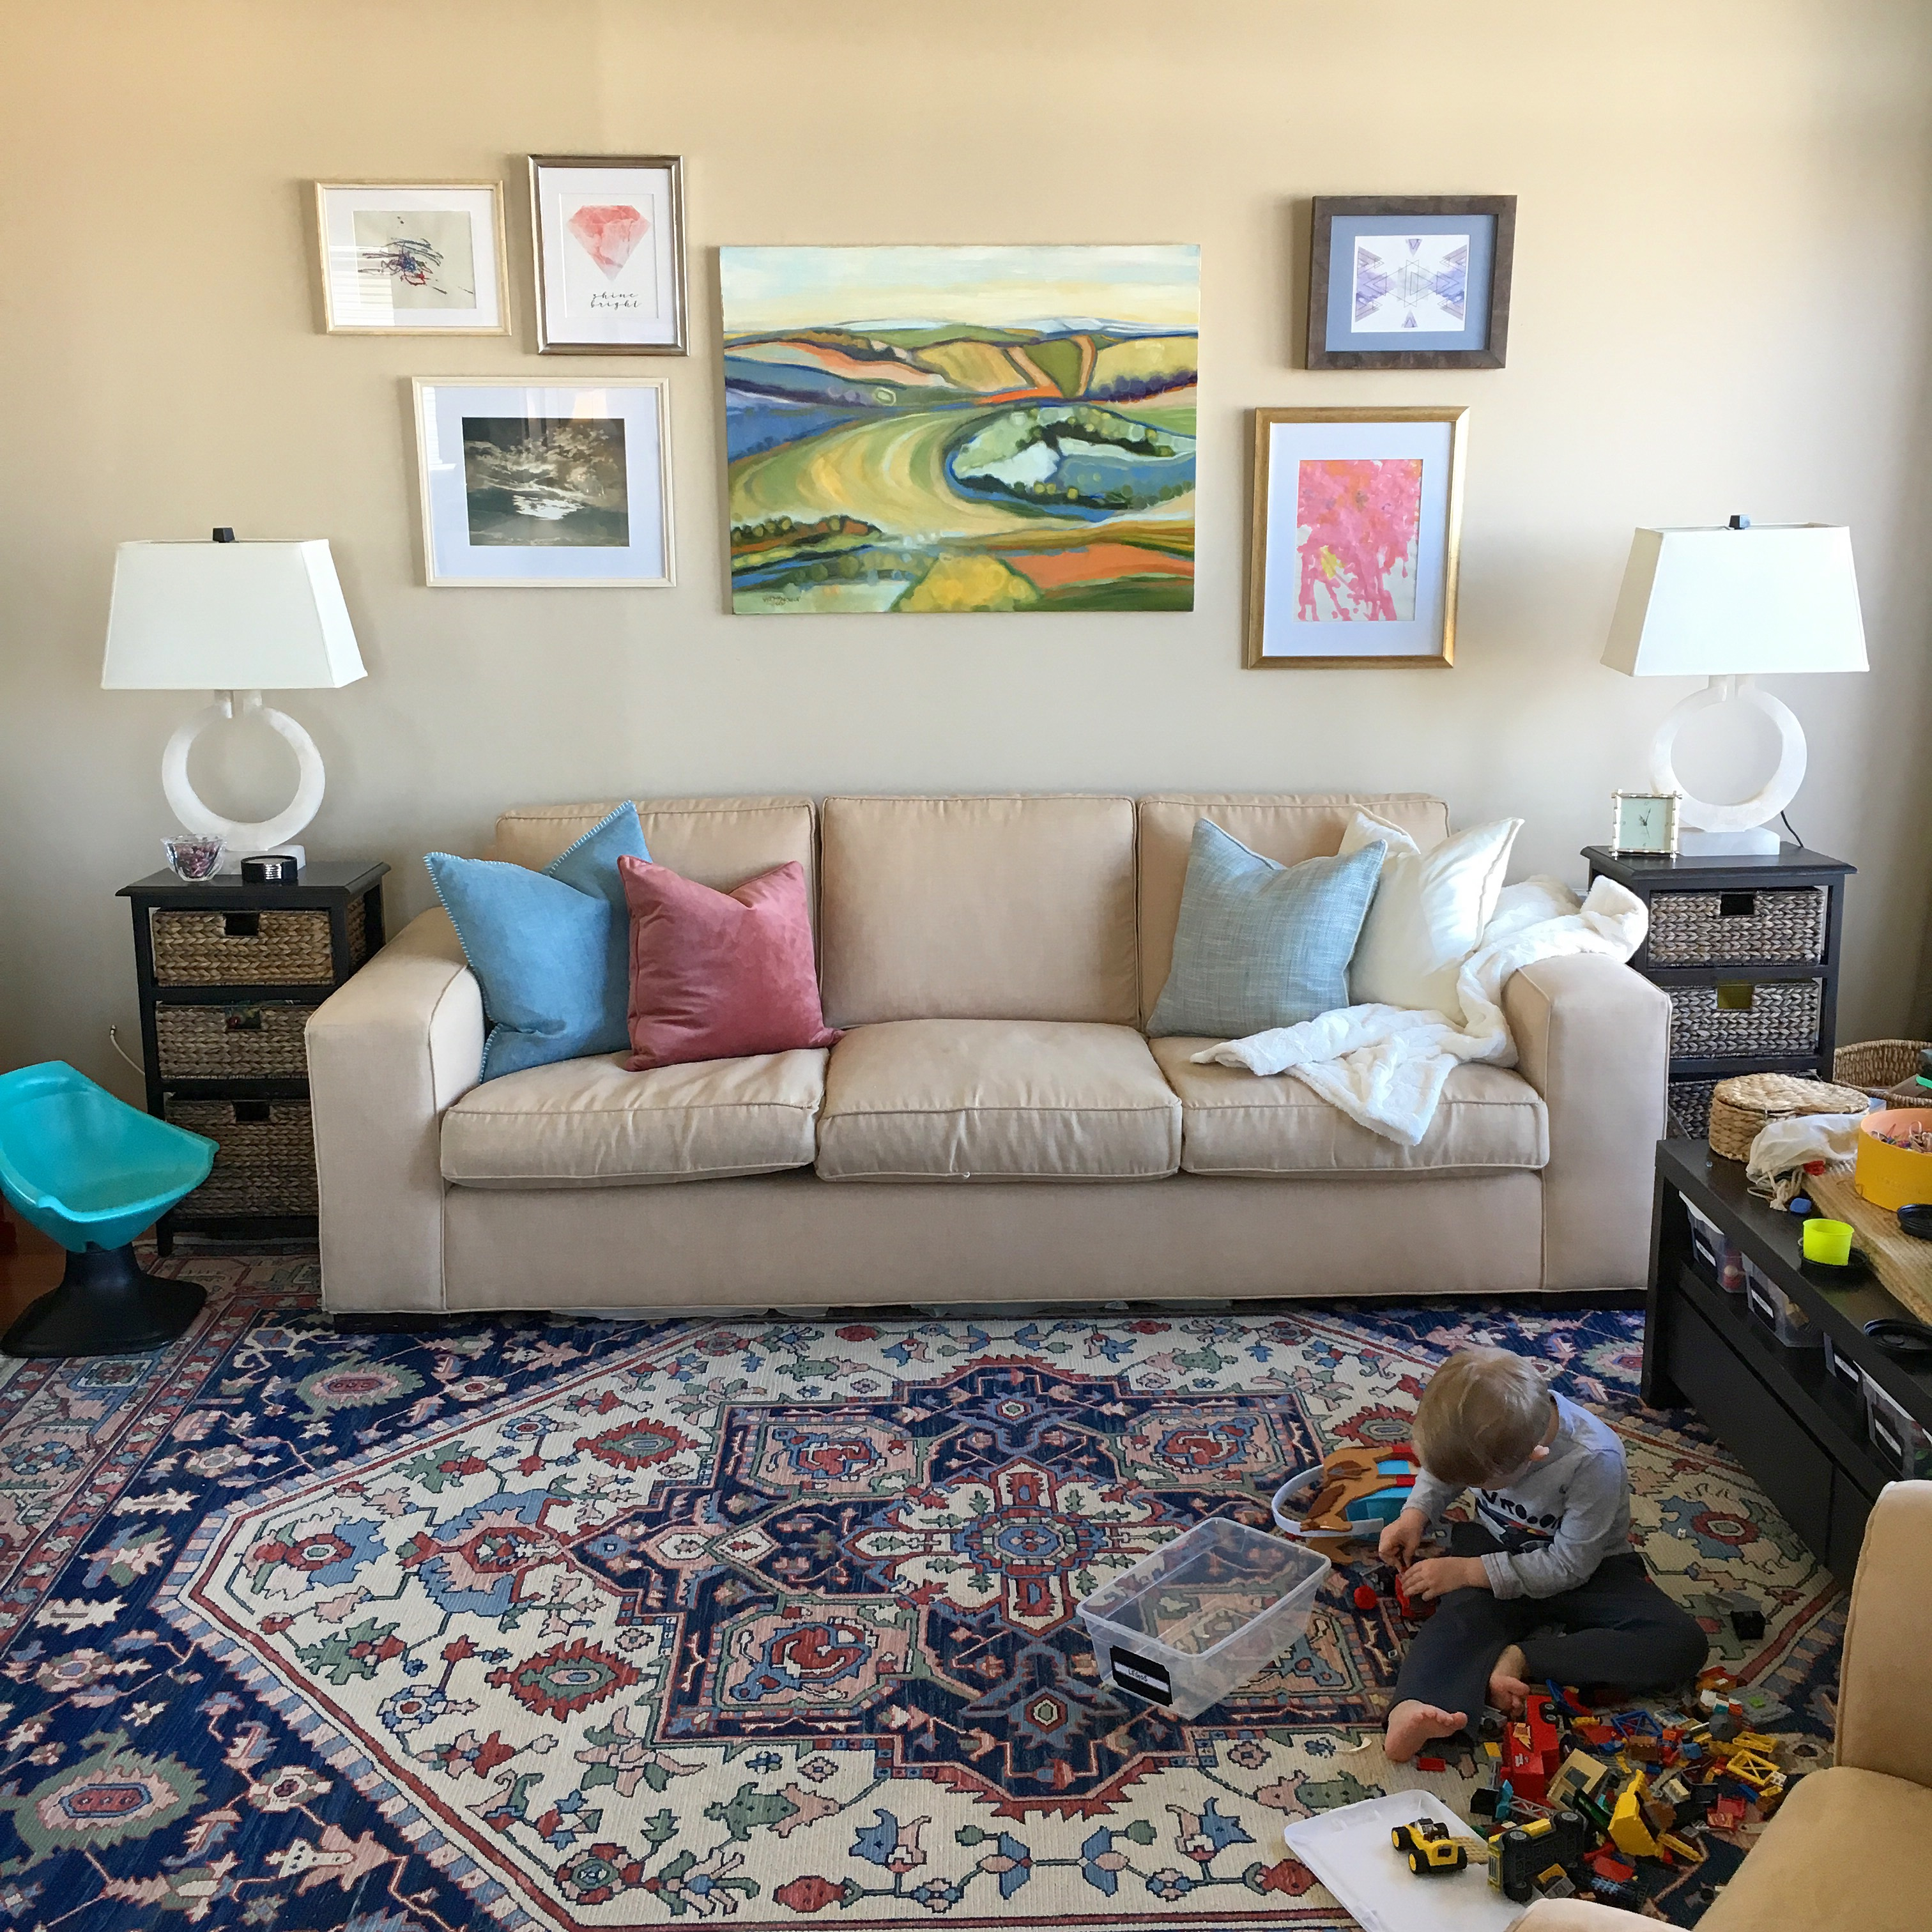 Creating a Gallery Wall (One Way to Tackle the Giant Expanse Over Your Couch)